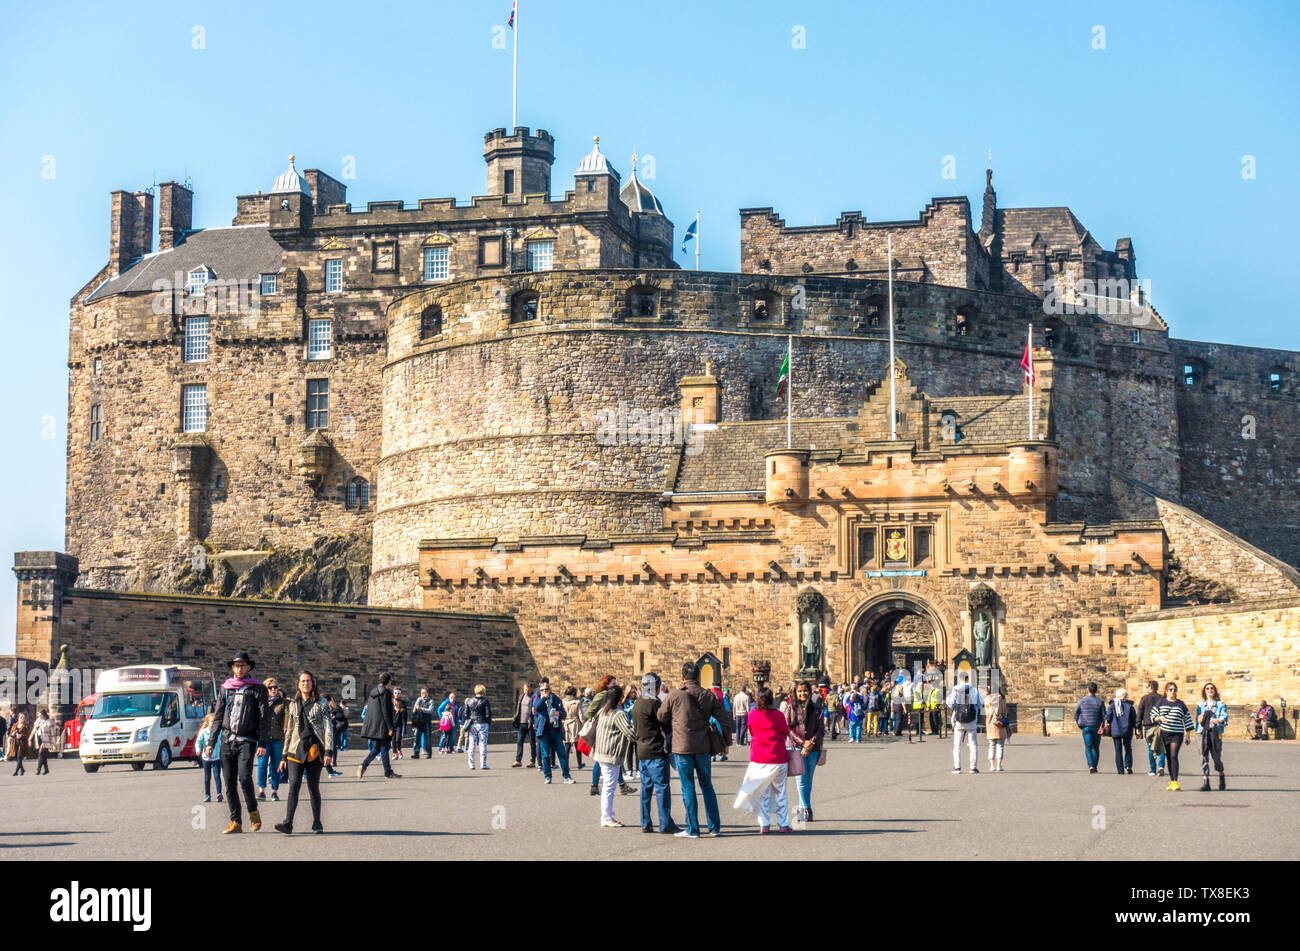 Wide view of visitors on the esplanade, with others going in an out of the main front entrance to Edinburgh Castle, Scotland, UK. Stock Photo